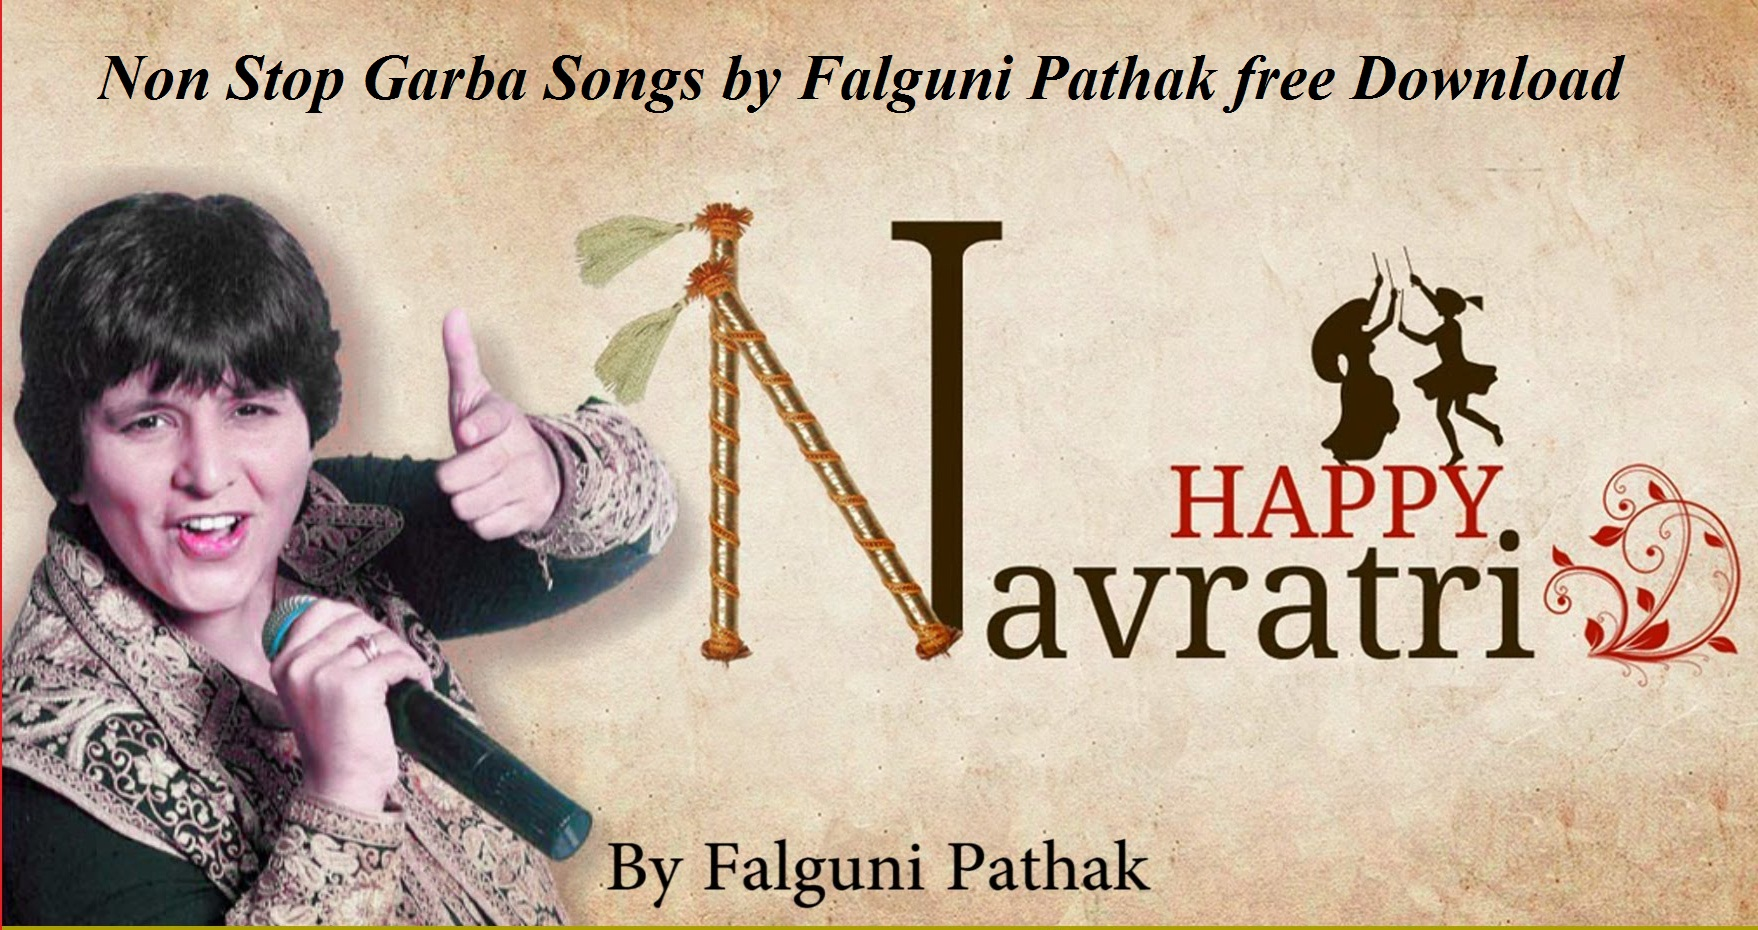 Non Stop Raas Dandiya and Garba Songs by Falguni Pathak free Download